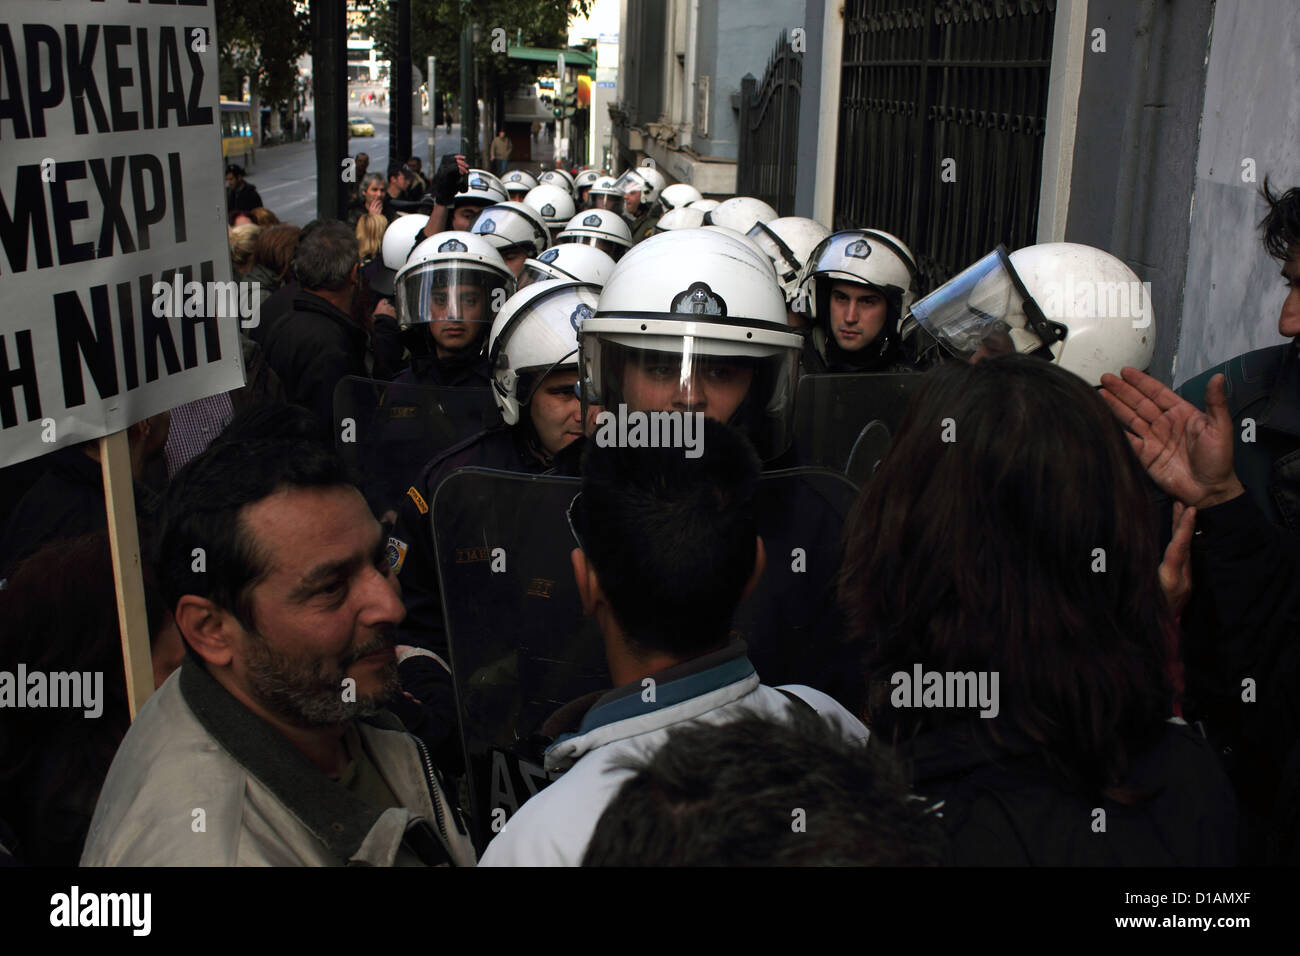 Police forces and demonstraters in Athens. - Stock Image